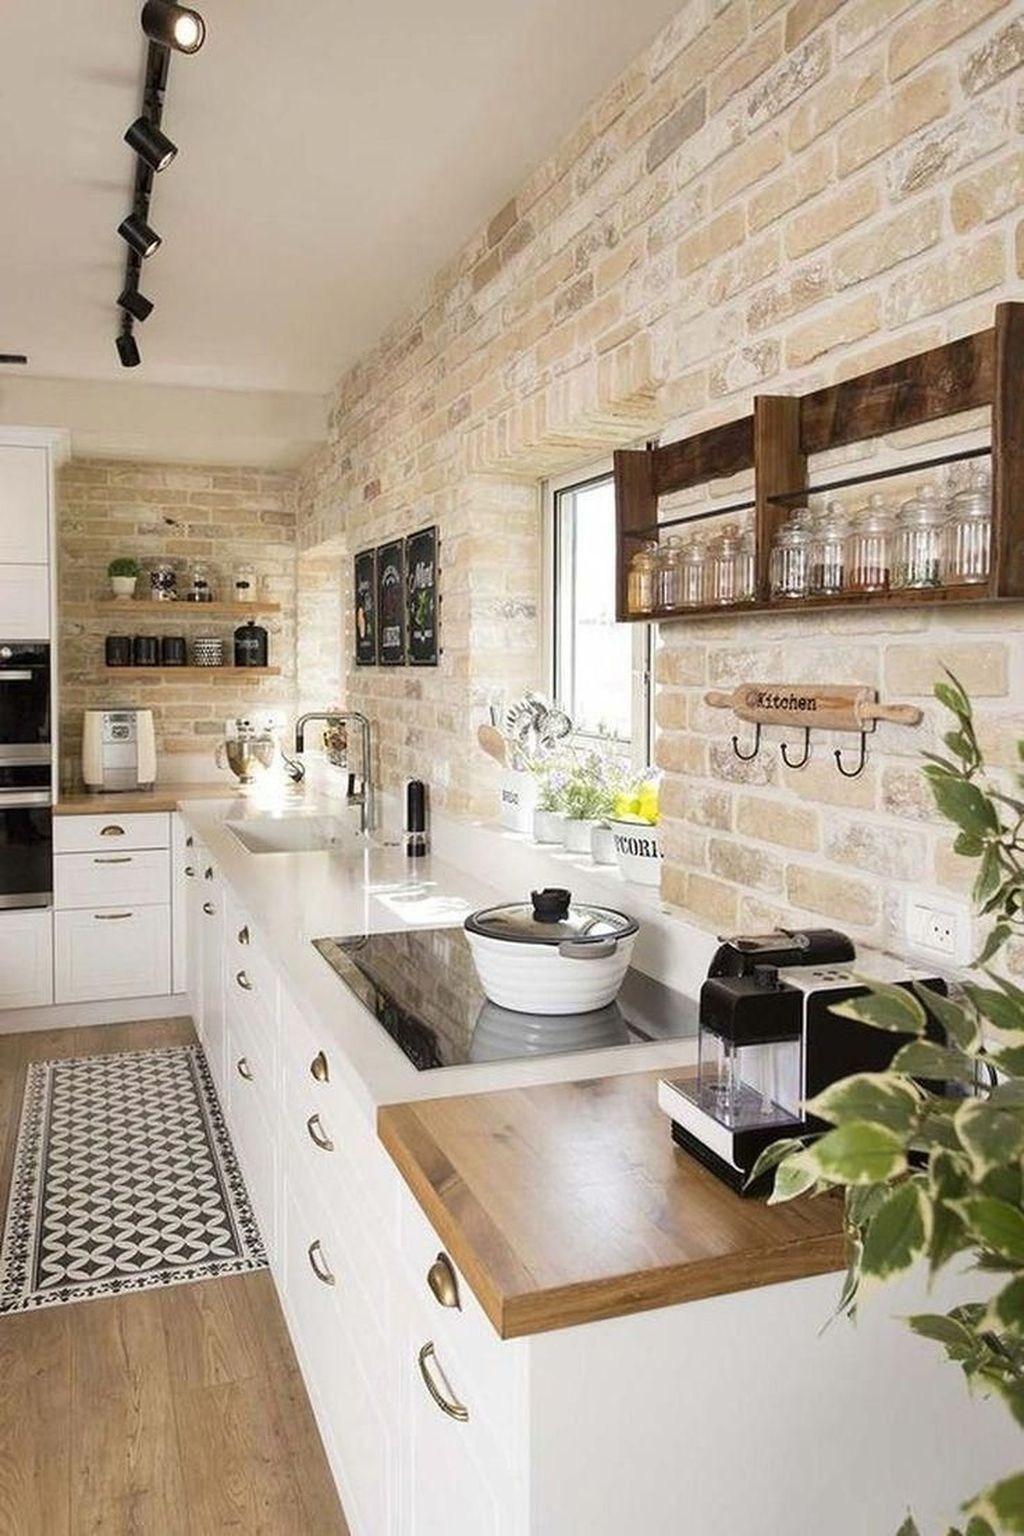 inspiring traditional farmhouse kitchen decoration ideas kitchendesignblog also best house design images in rh pinterest